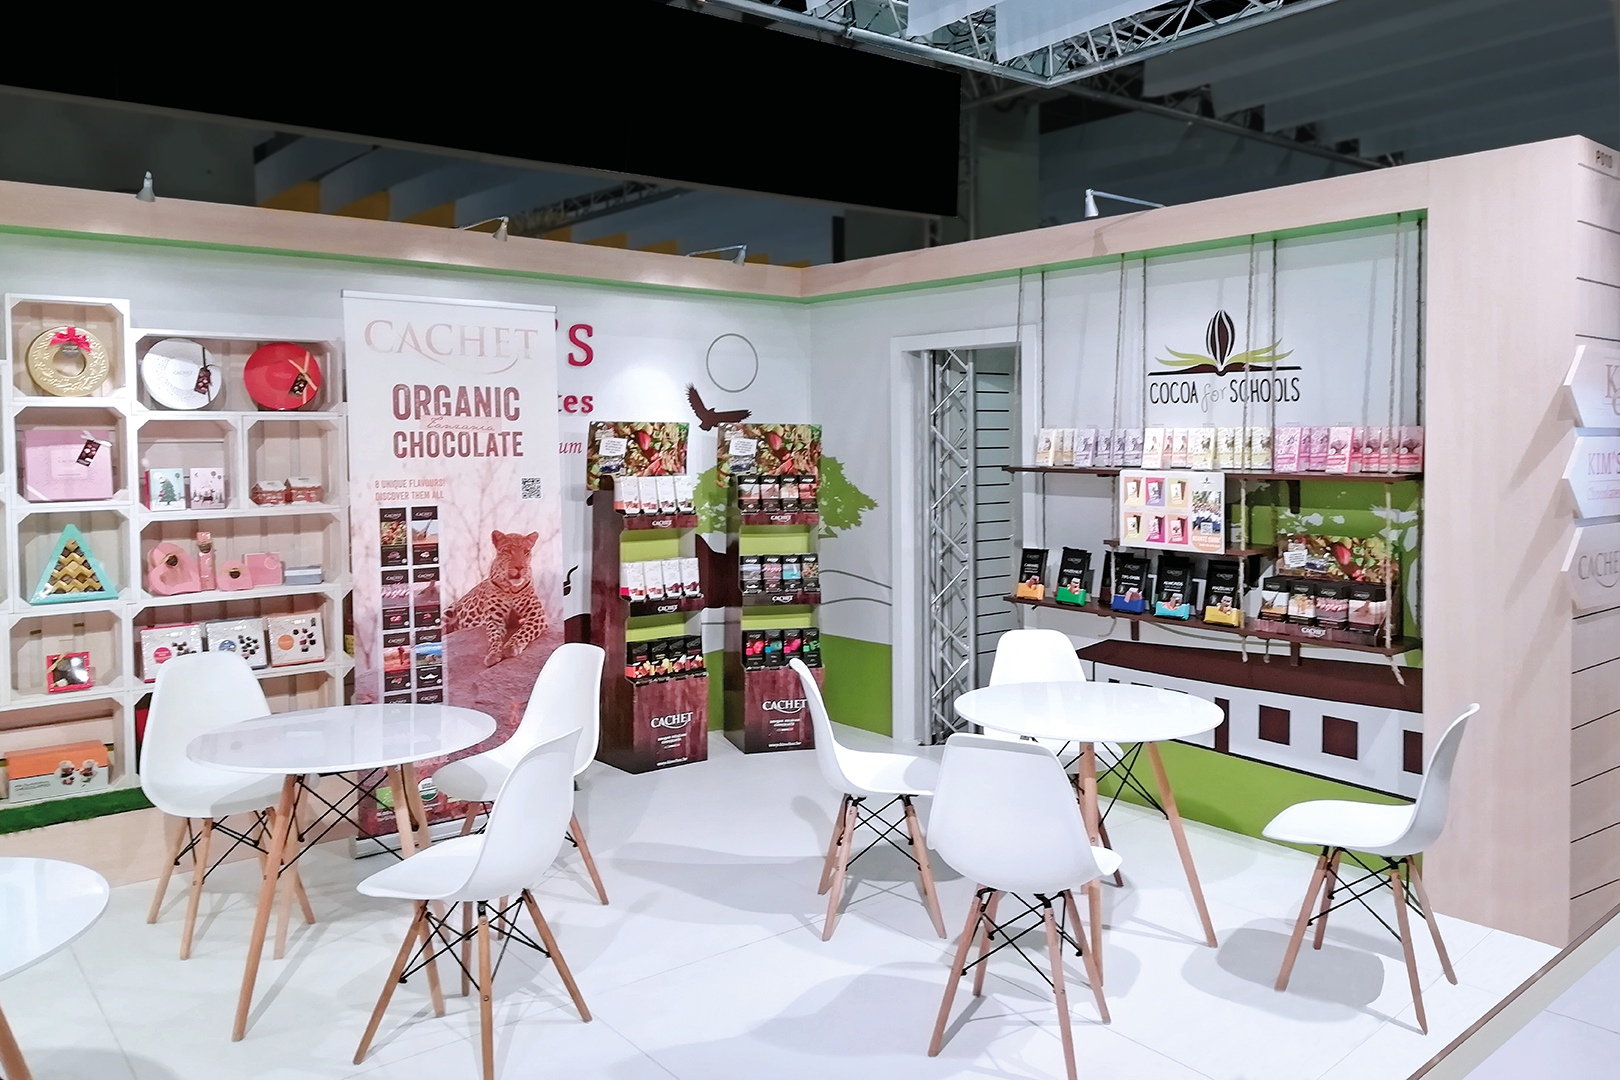 booth of Kim's Chocolate at the exhibition in Cologne